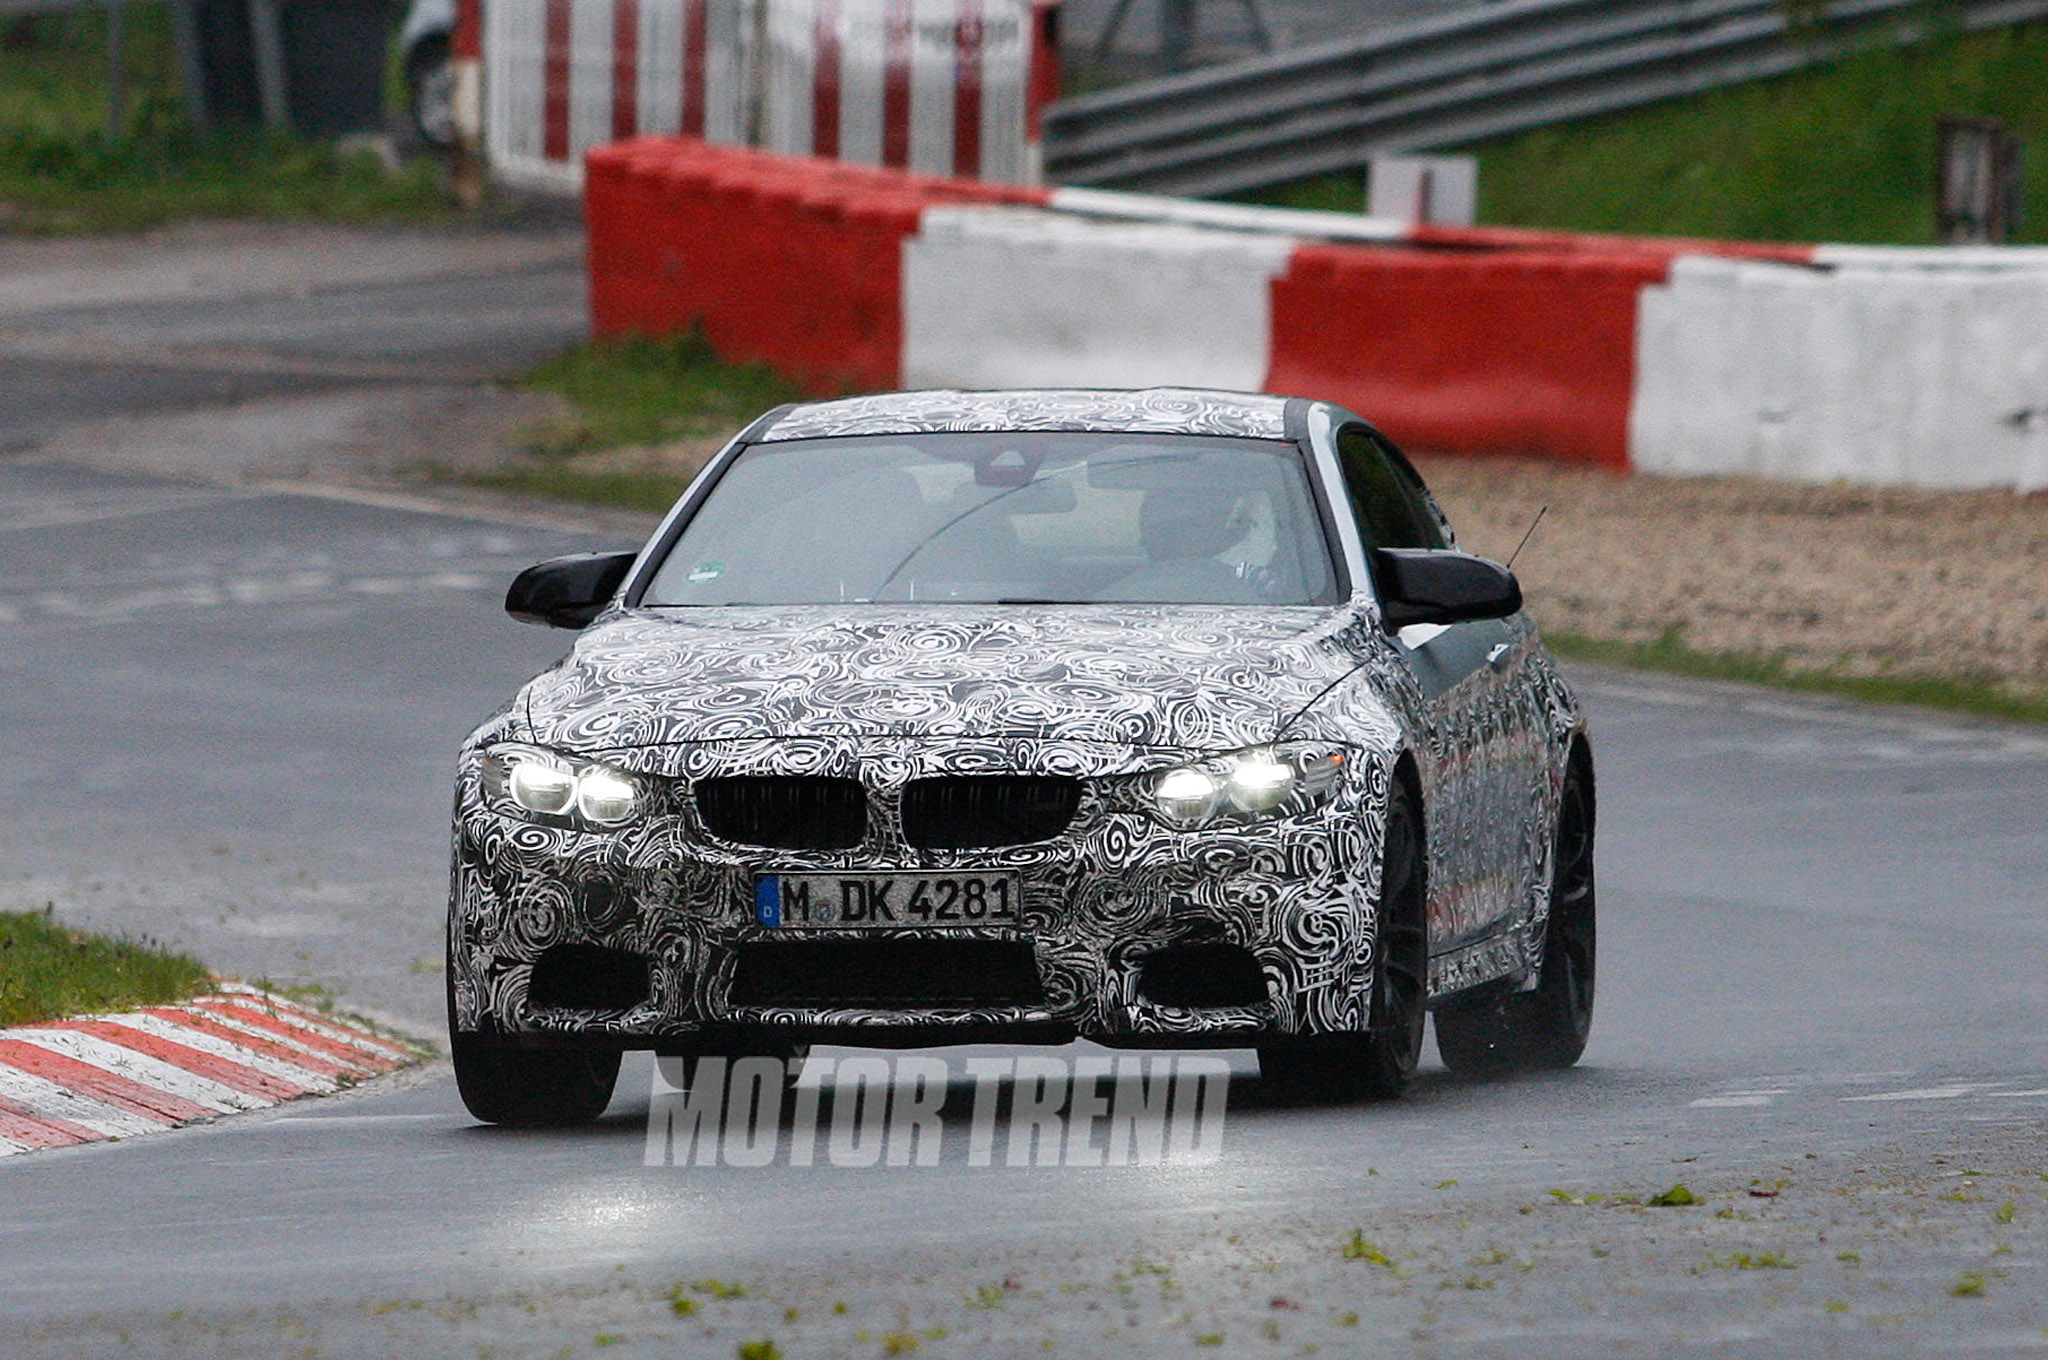 Auto and Cycle Spotted: Upcoming BMW M4 Testing at Nurburgring.  Article by Ben Timmins on May 22, 2013